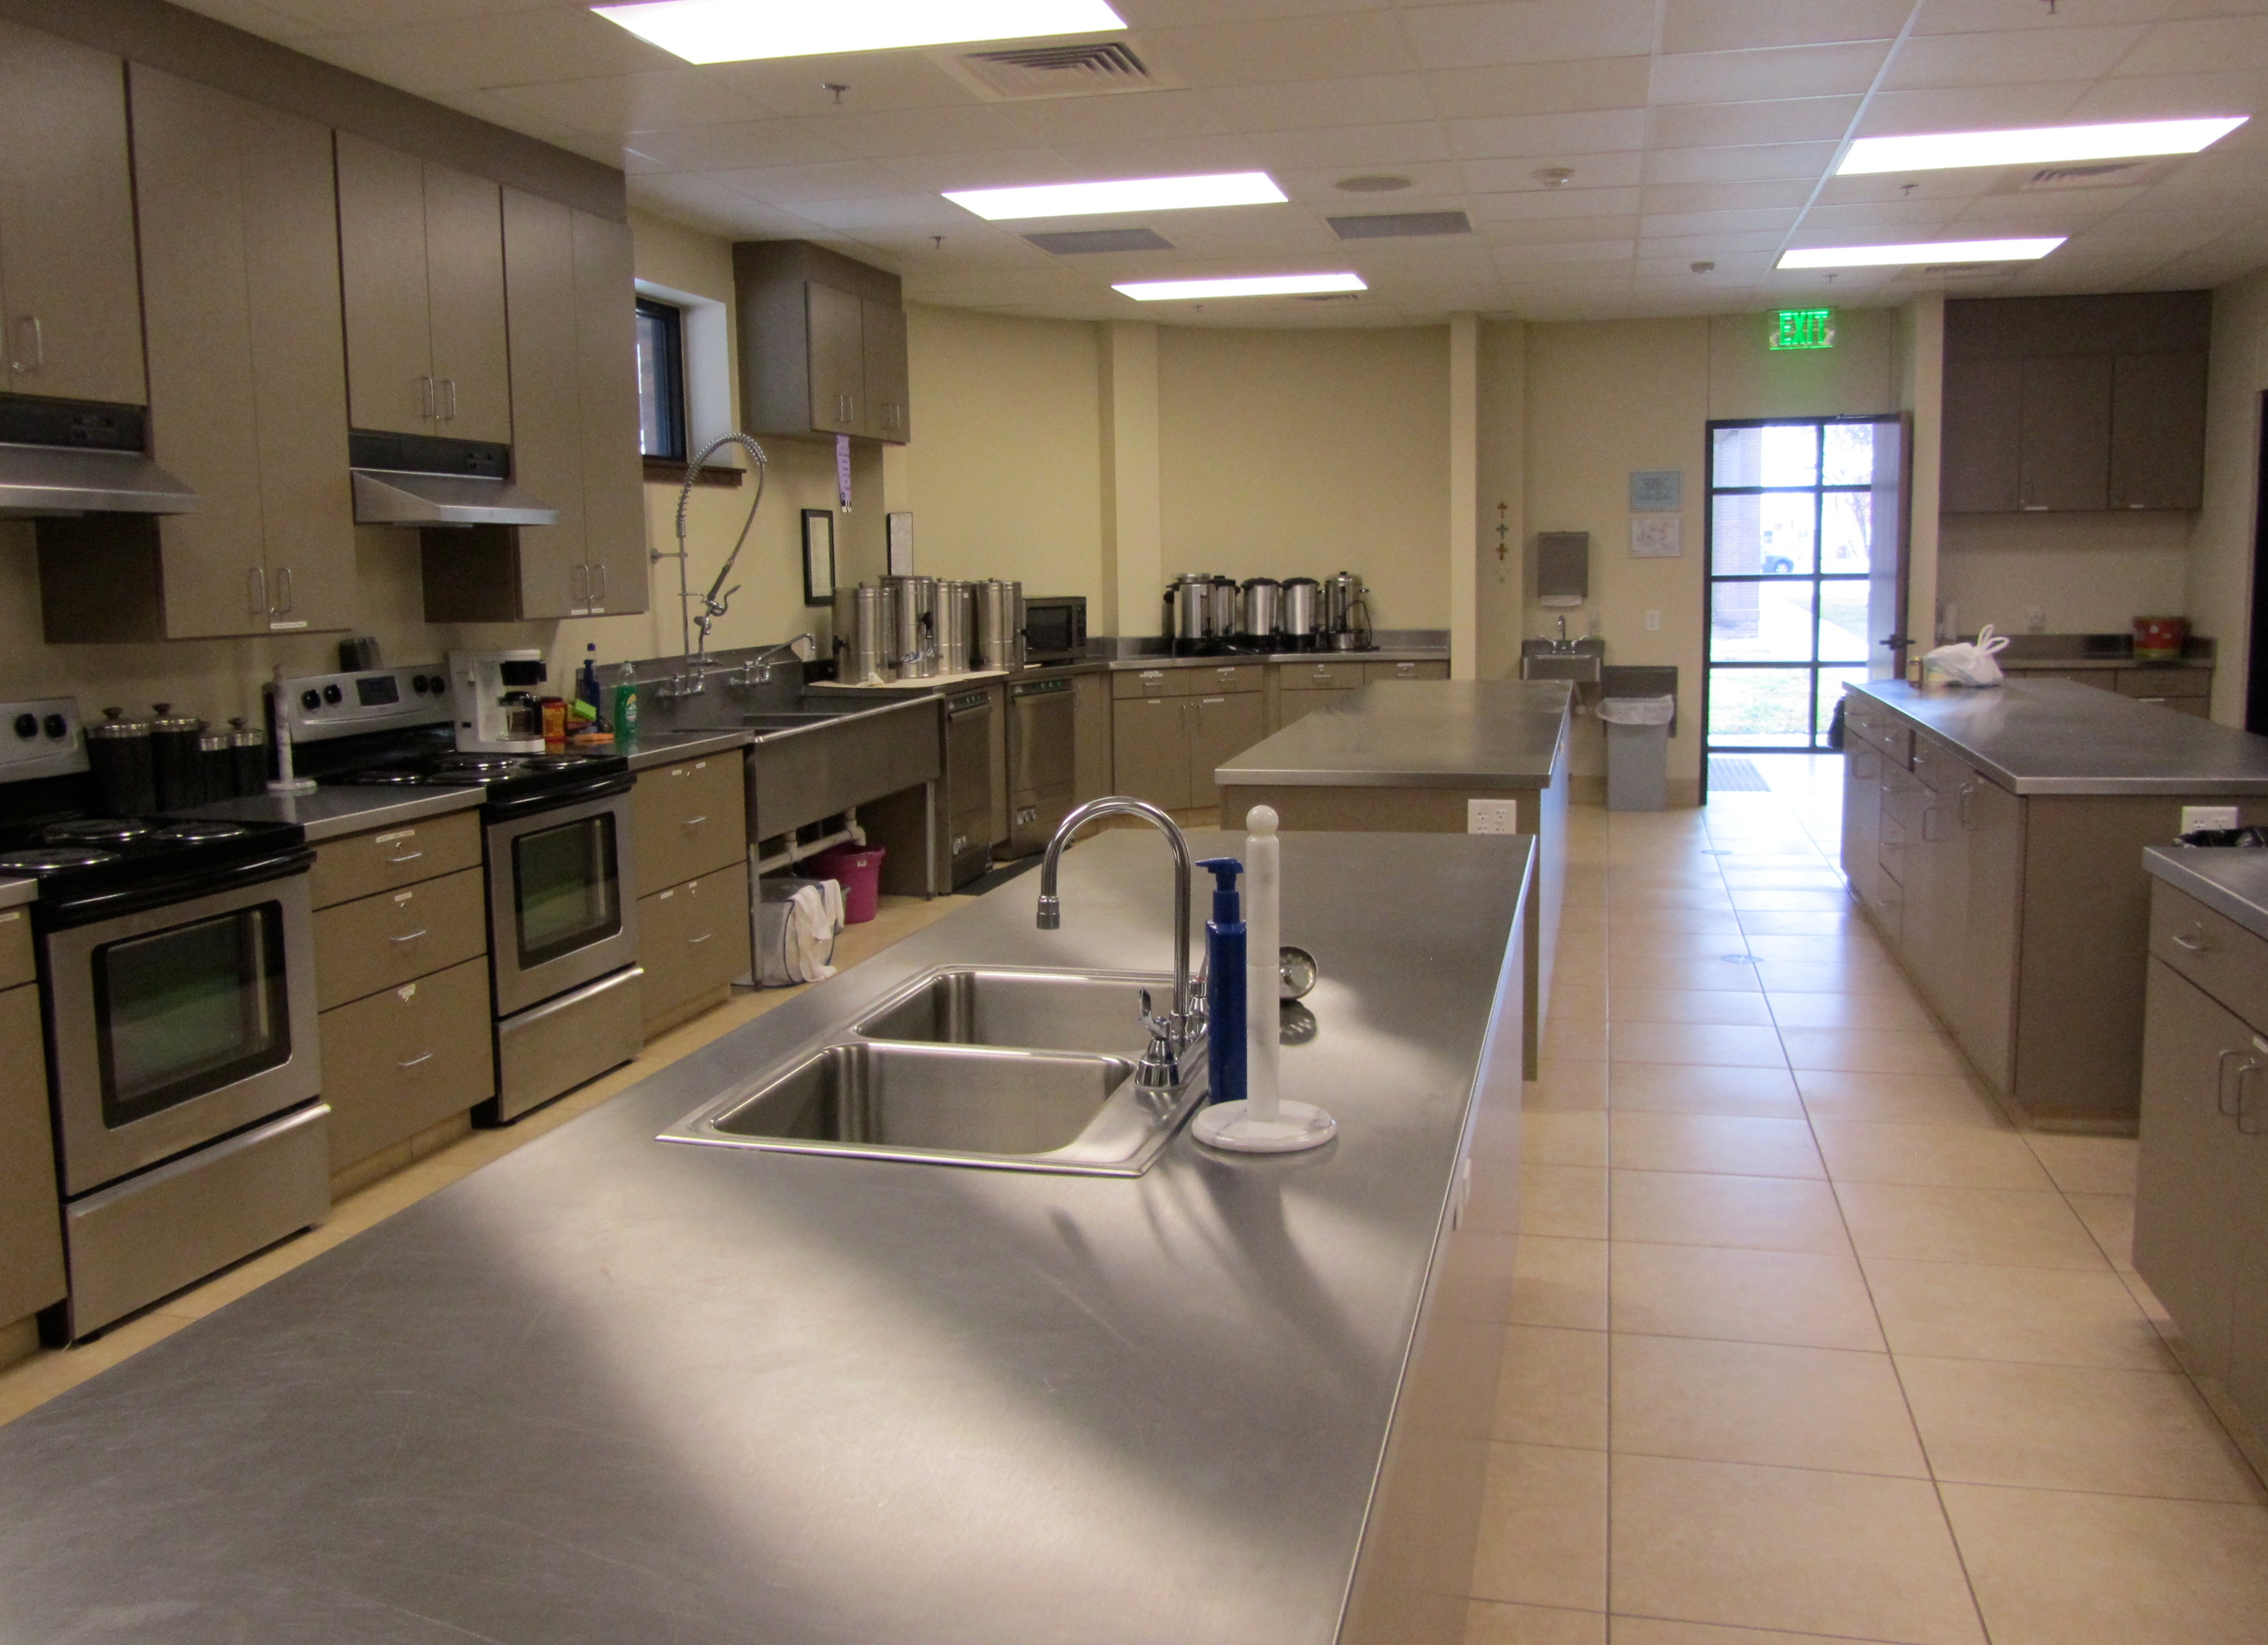 Church Kitchens And Accessibility 5 Issues To Consider